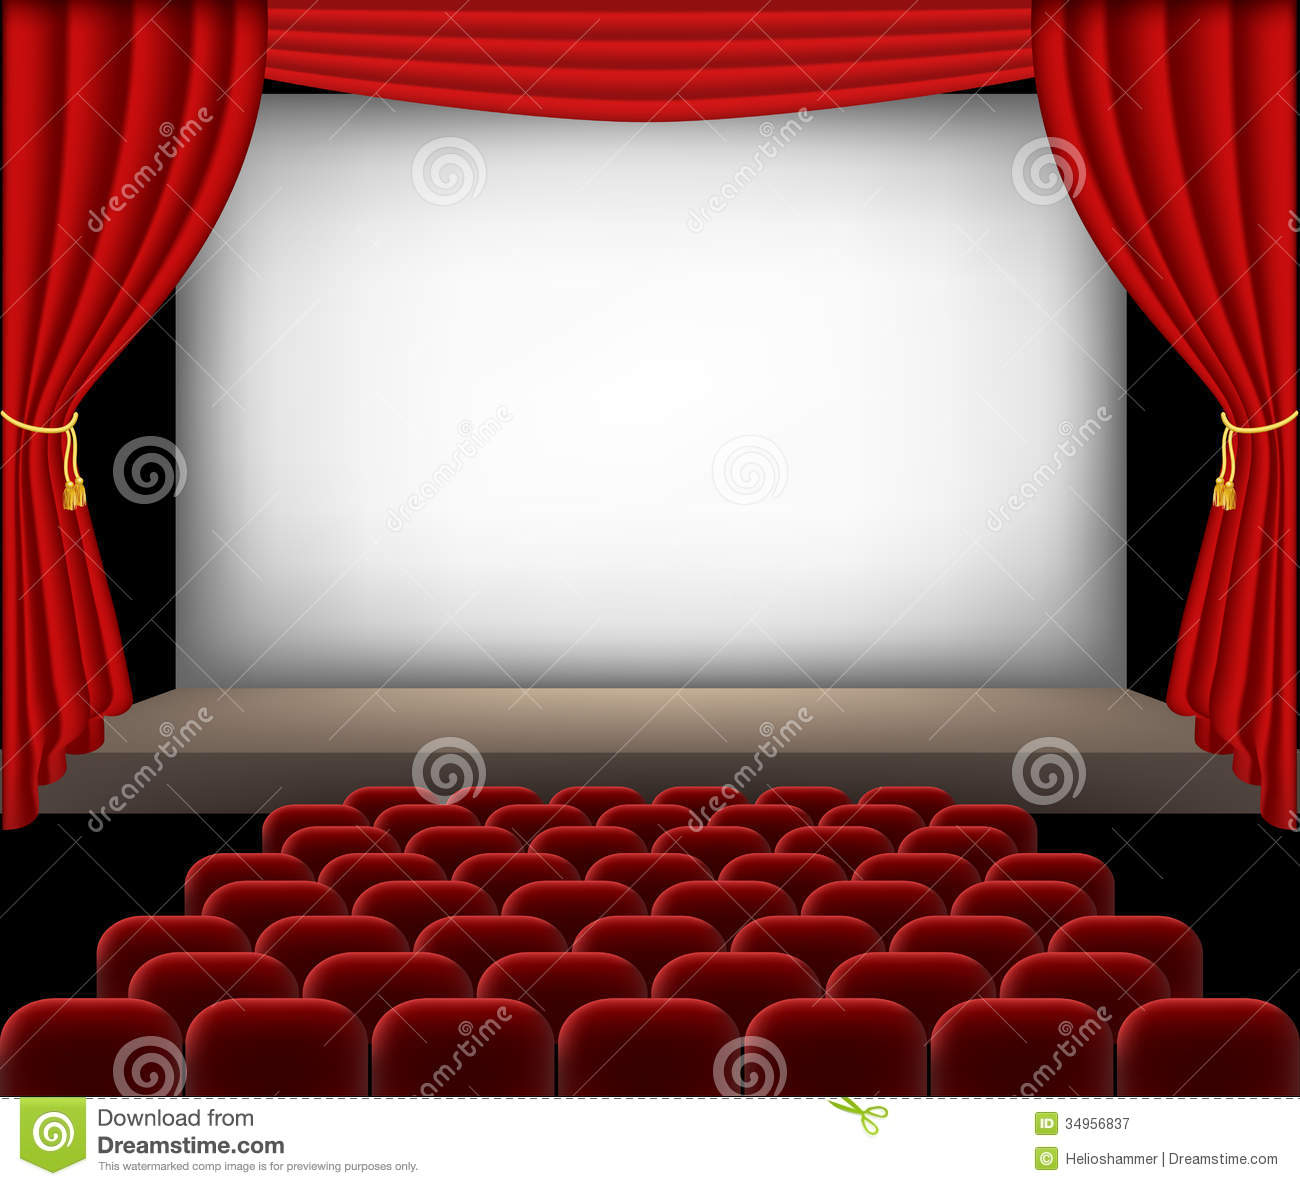 Cinema Auditorium With Red Seats And Curtains Royalty Free